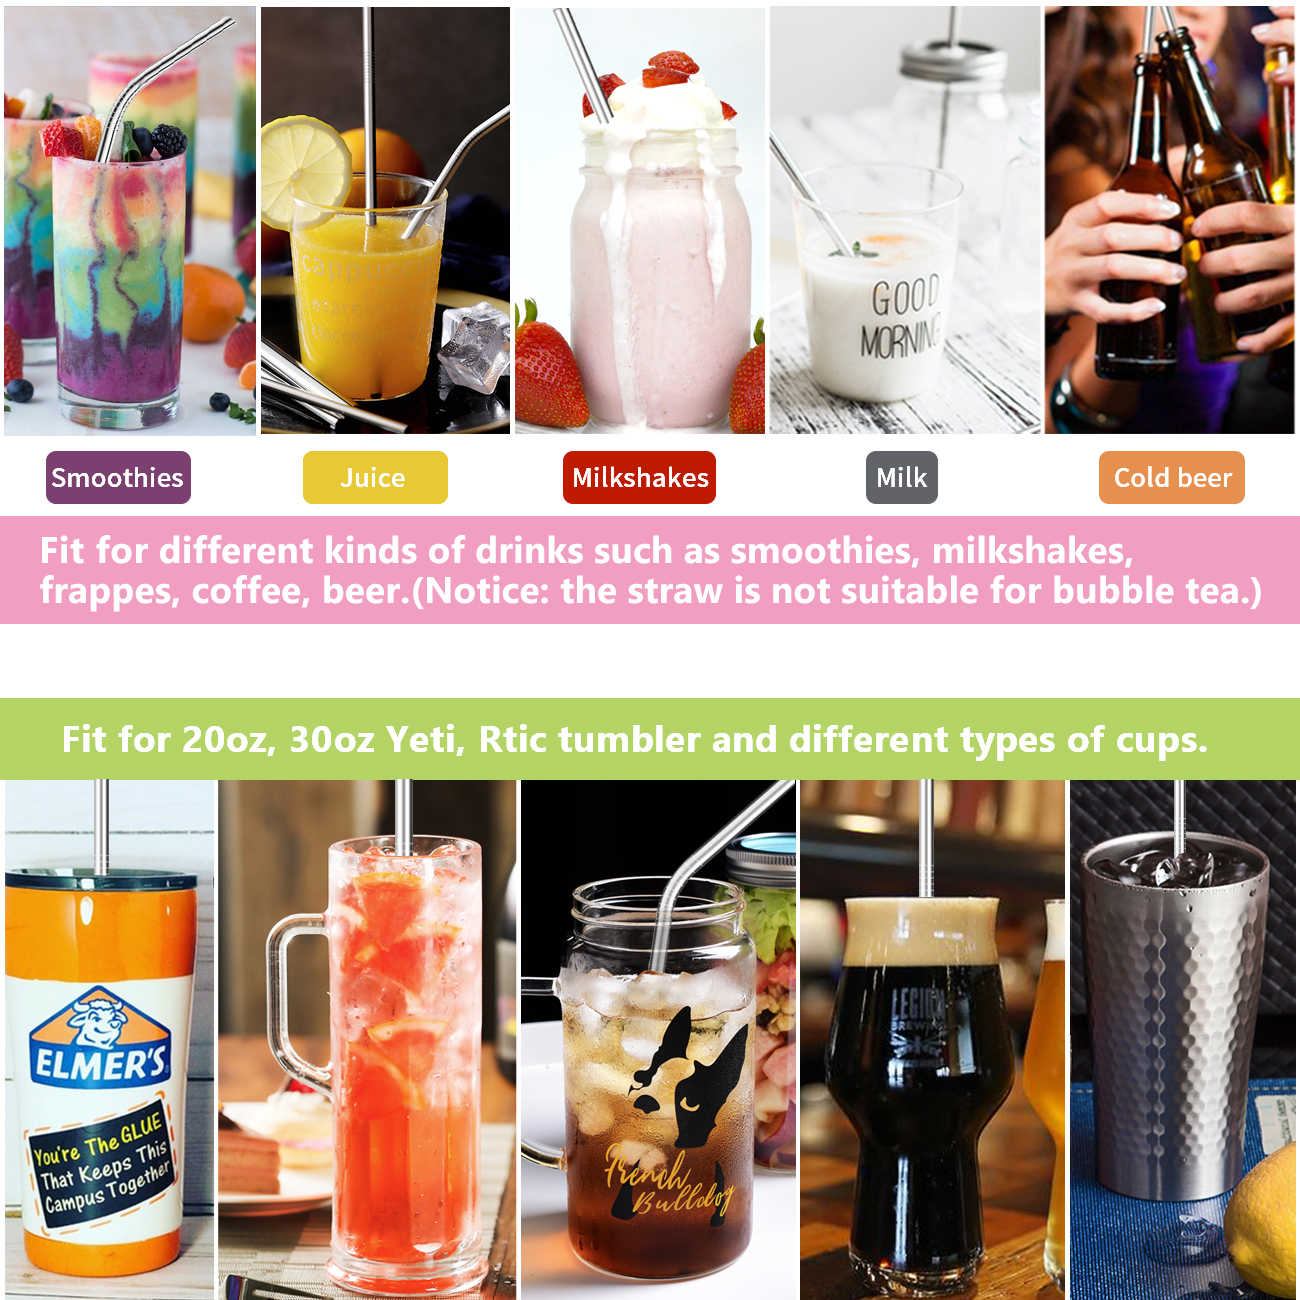 """Stainless Steel Straws,Set of 8 Reusable Stainless Steel Drinking Straws BPA Free 8.5"""" 10.5"""" Metal Straws for 20oz 30oz Yeti, Ritc Tumbler Cups Mugs with 2 Cleaning Brushes"""